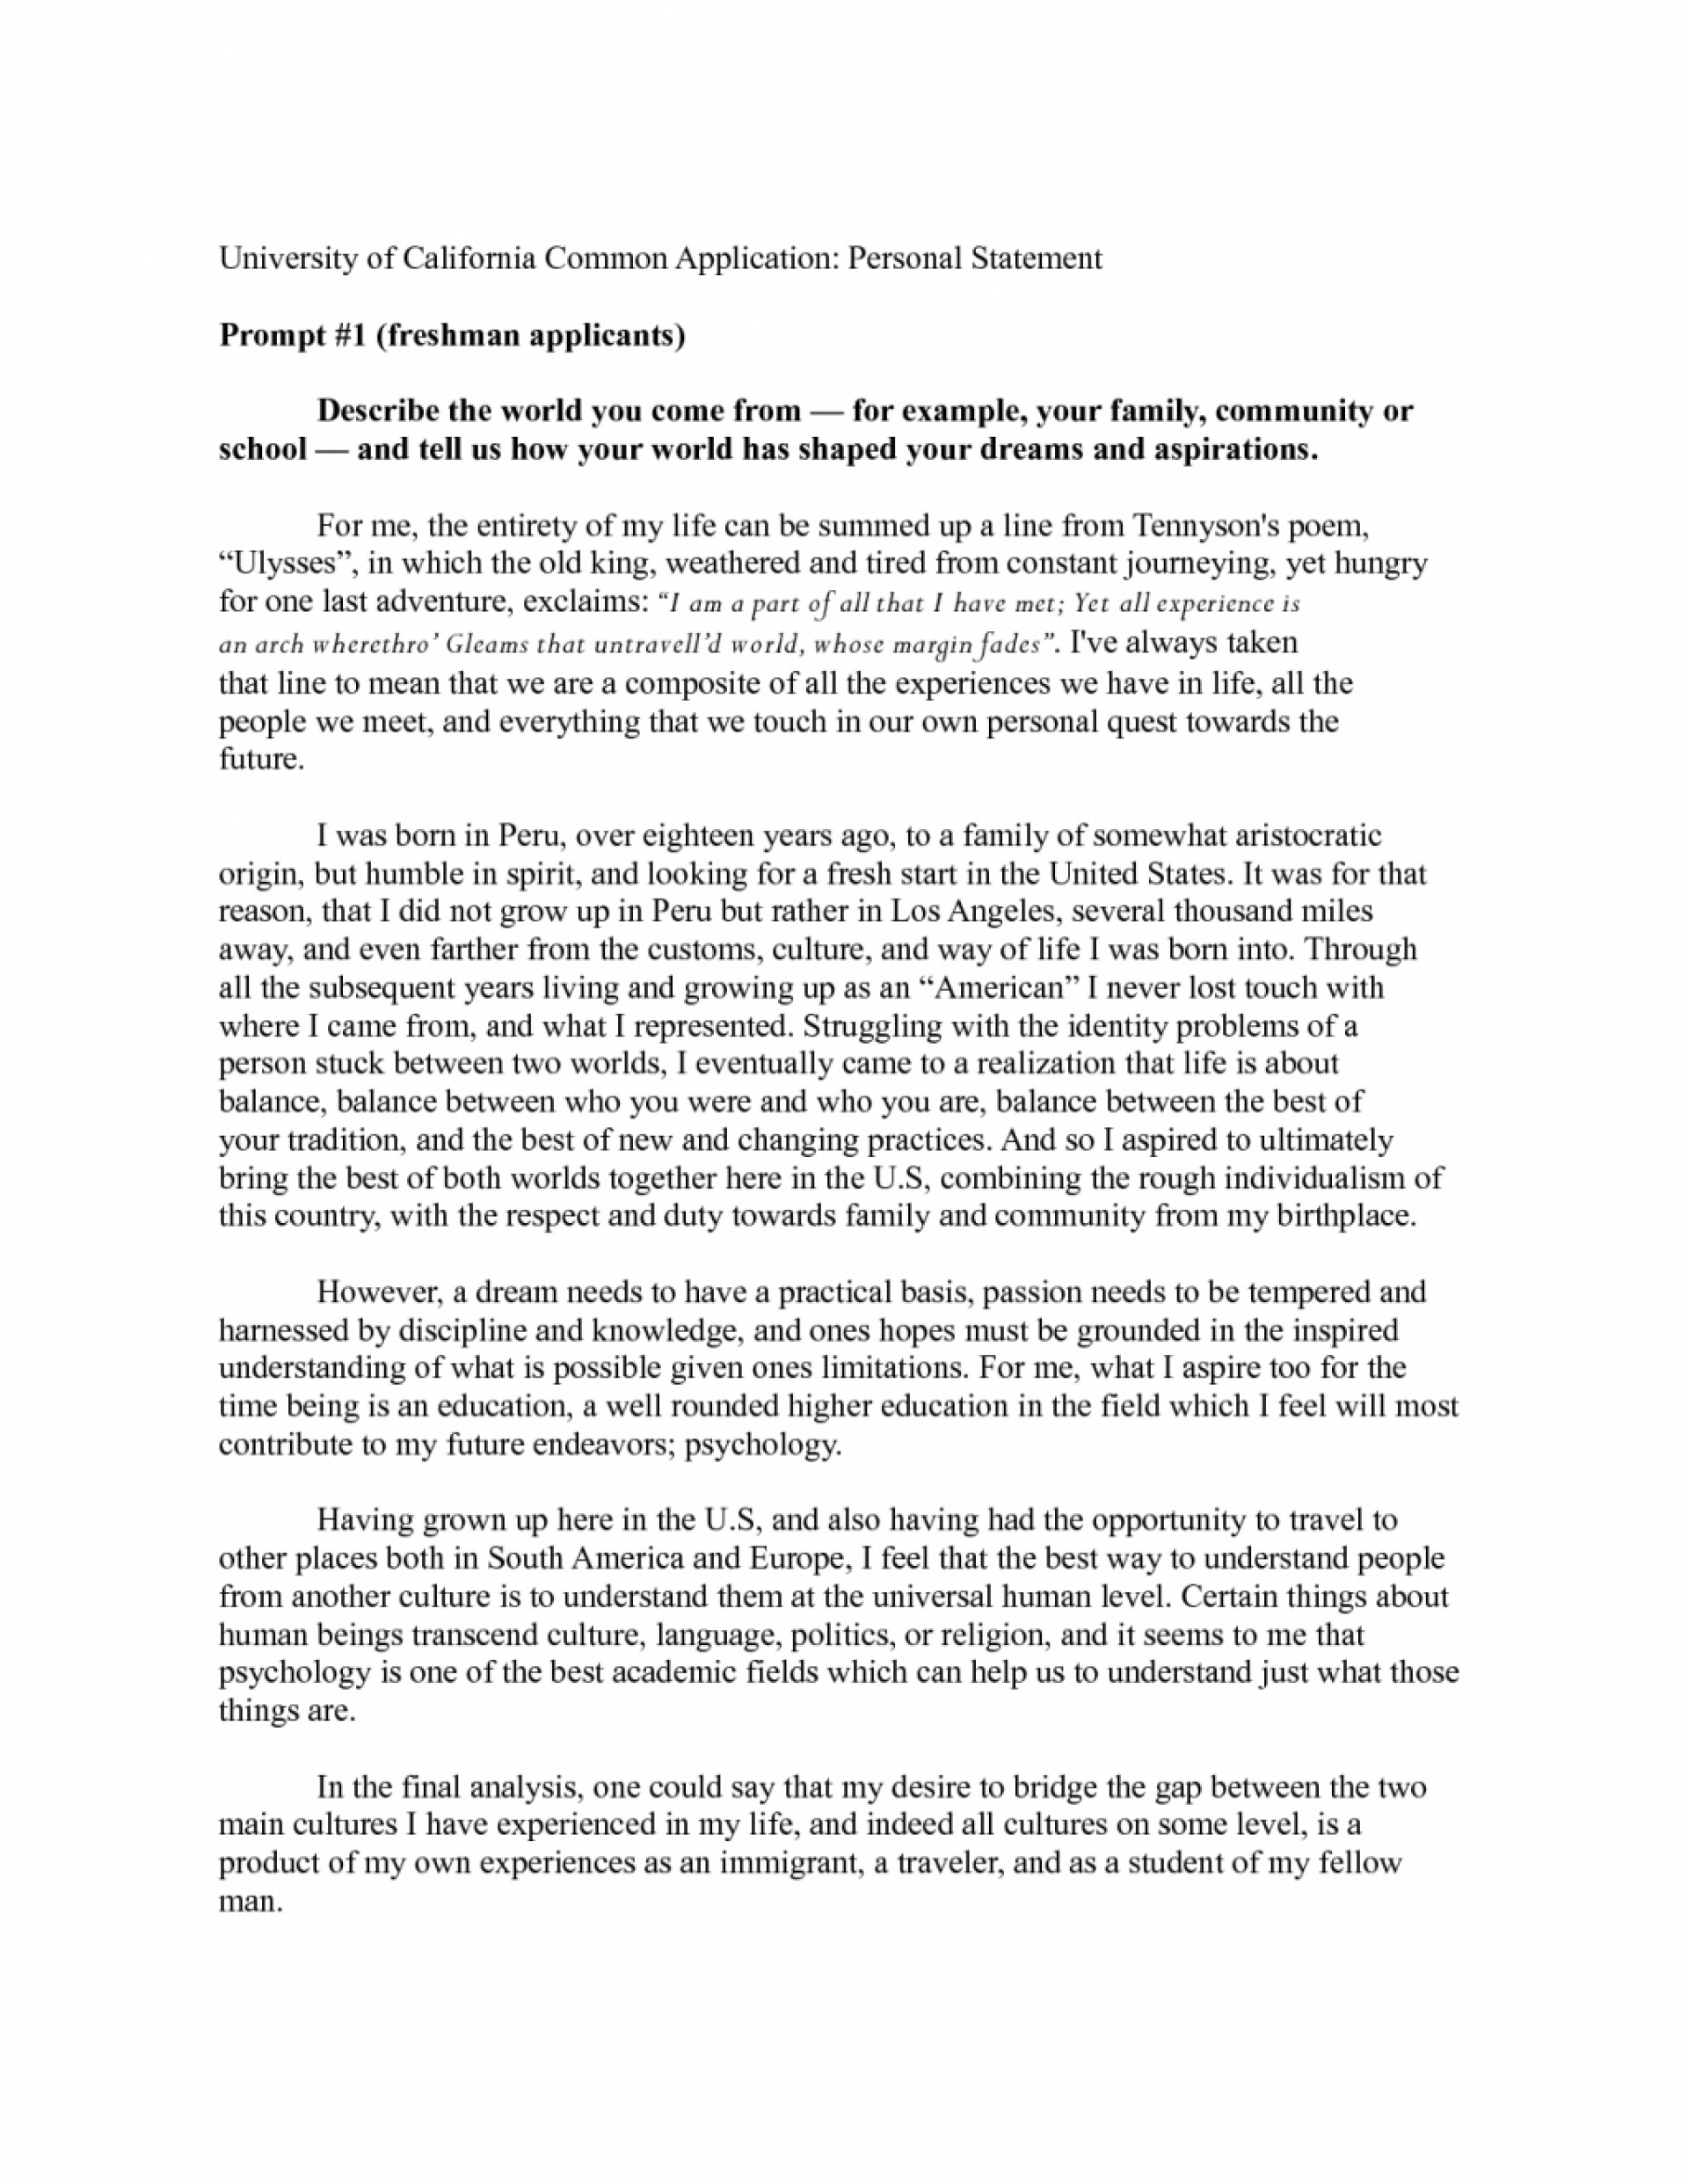 011 Collegecation Essays Words Berkeley Personal Statement Template Pcffemqy Student Life About Health This Will Attempt To Awesome 1024x1325 Immigration Unusual Sybil Baker Introduction 1920